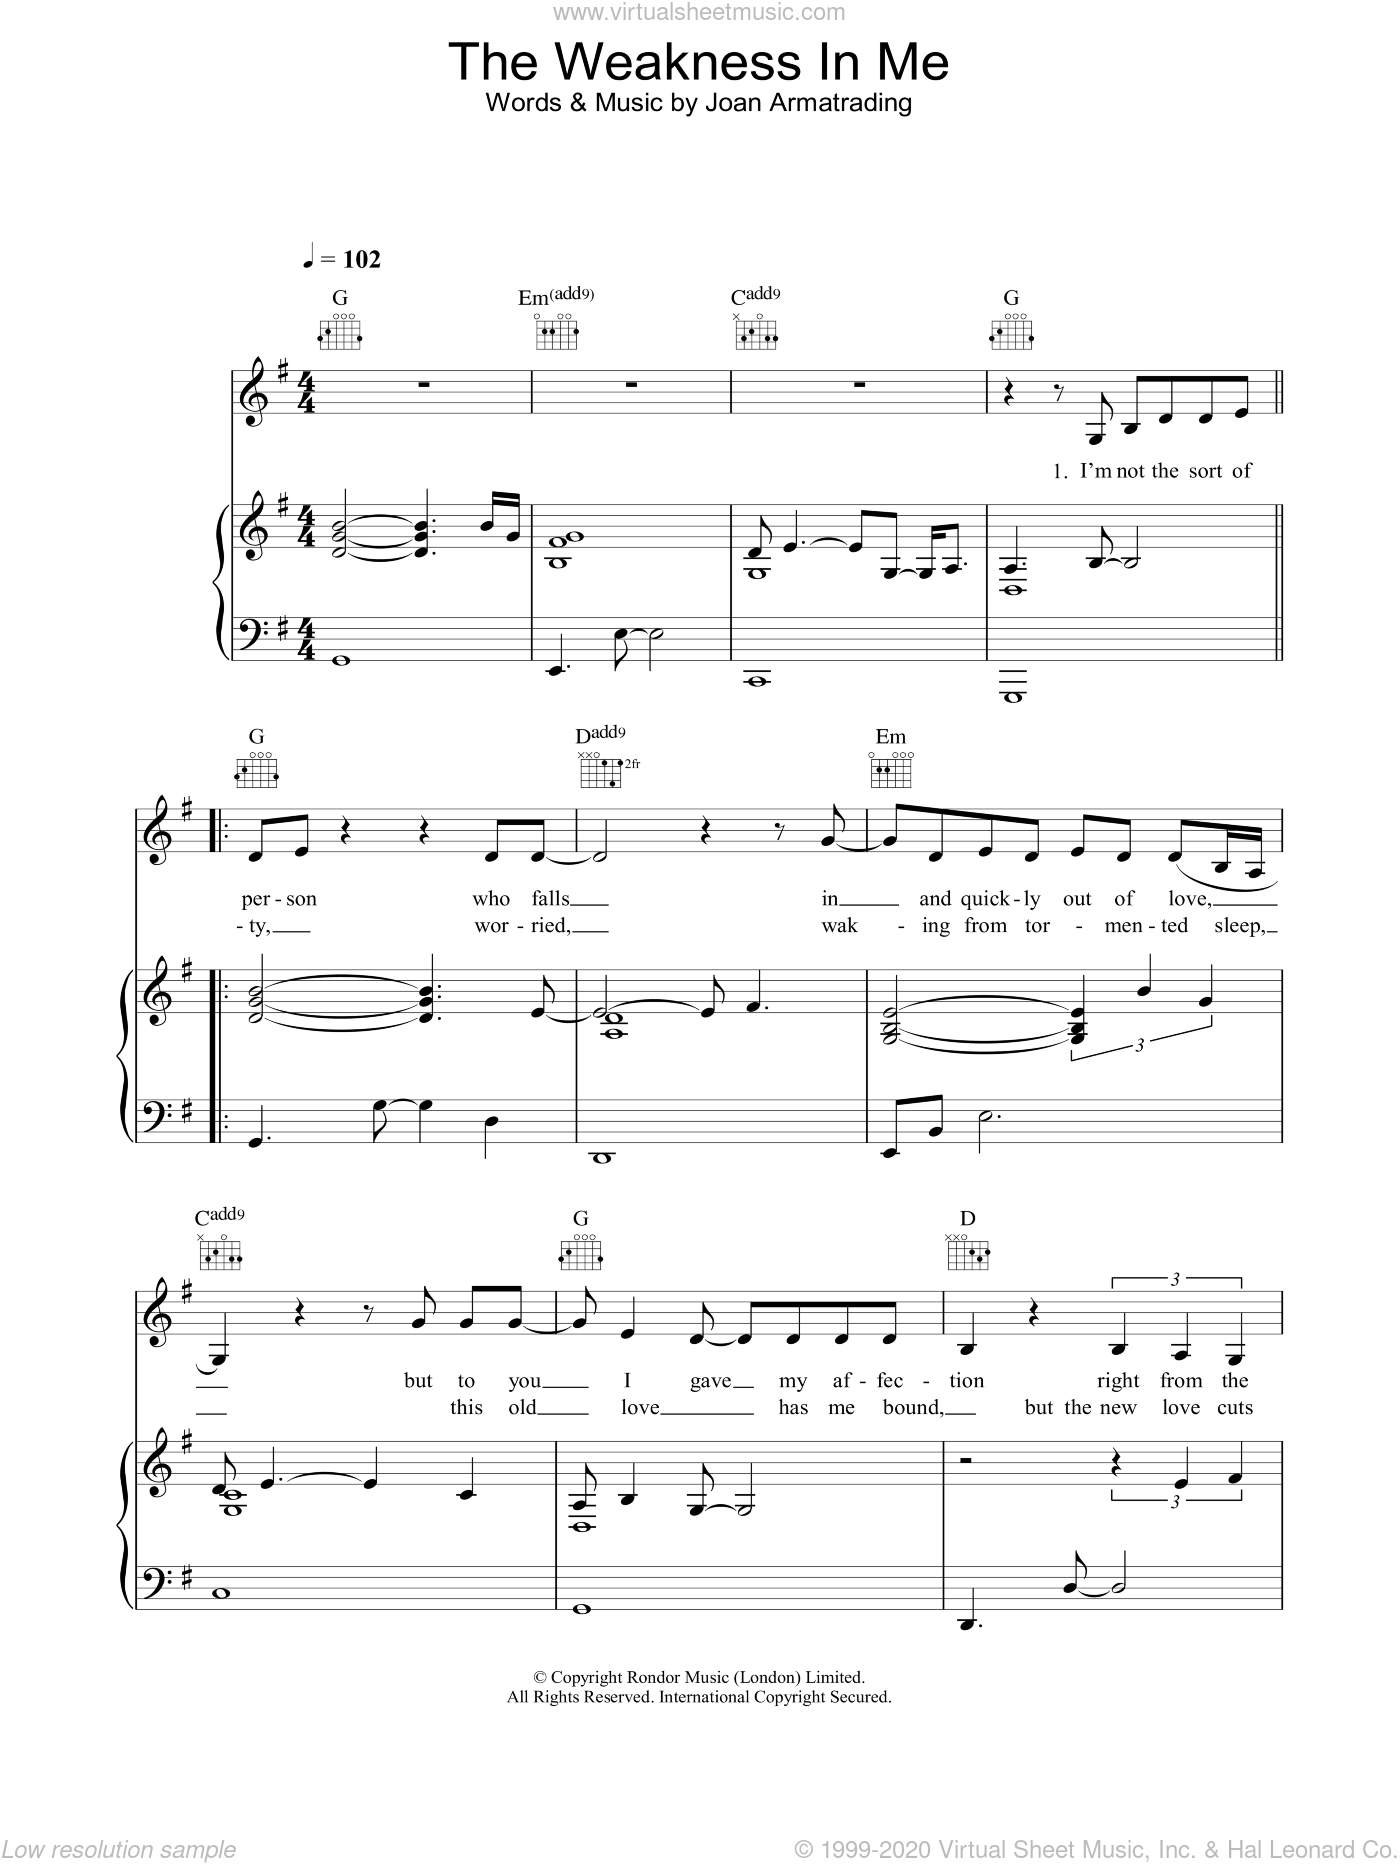 The Weakness In Me sheet music for voice, piano or guitar by Joan Armatrading, intermediate skill level